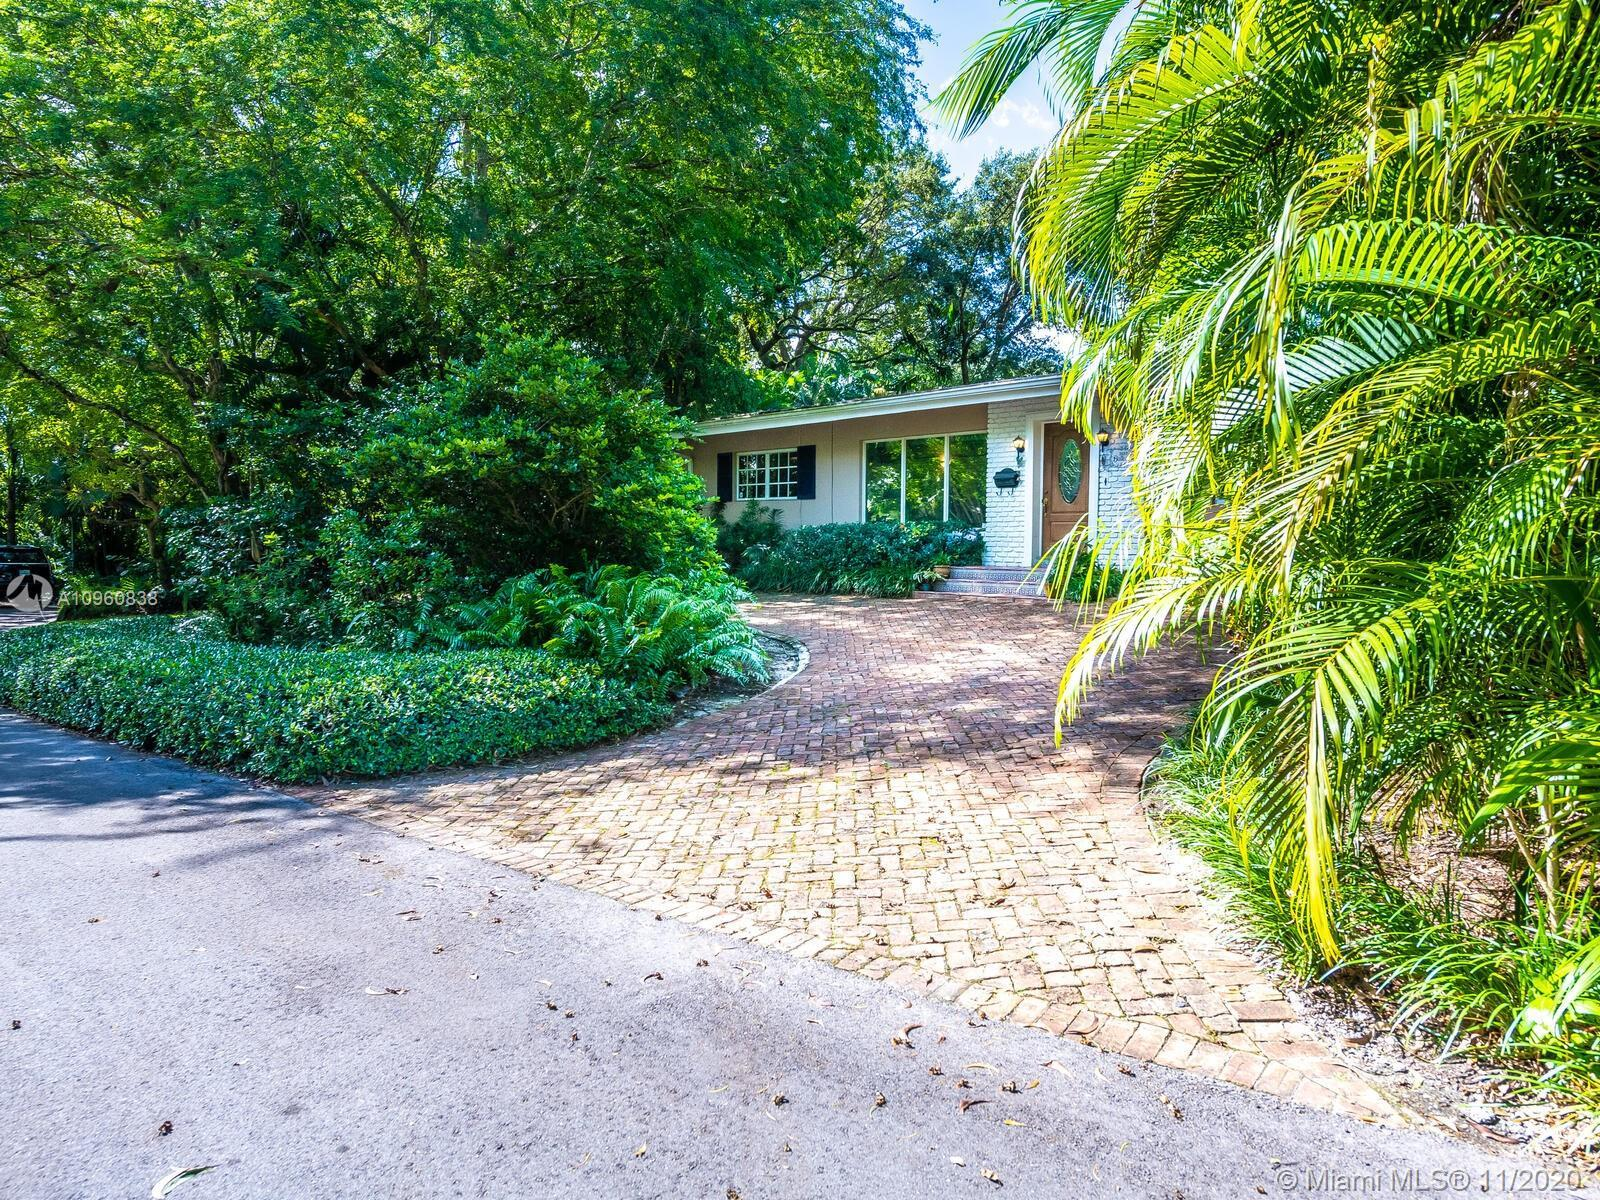 Superbly located in South Coconut Grove on a NON flood zone corner lot, the 3 bedroom / 3 bathroom h